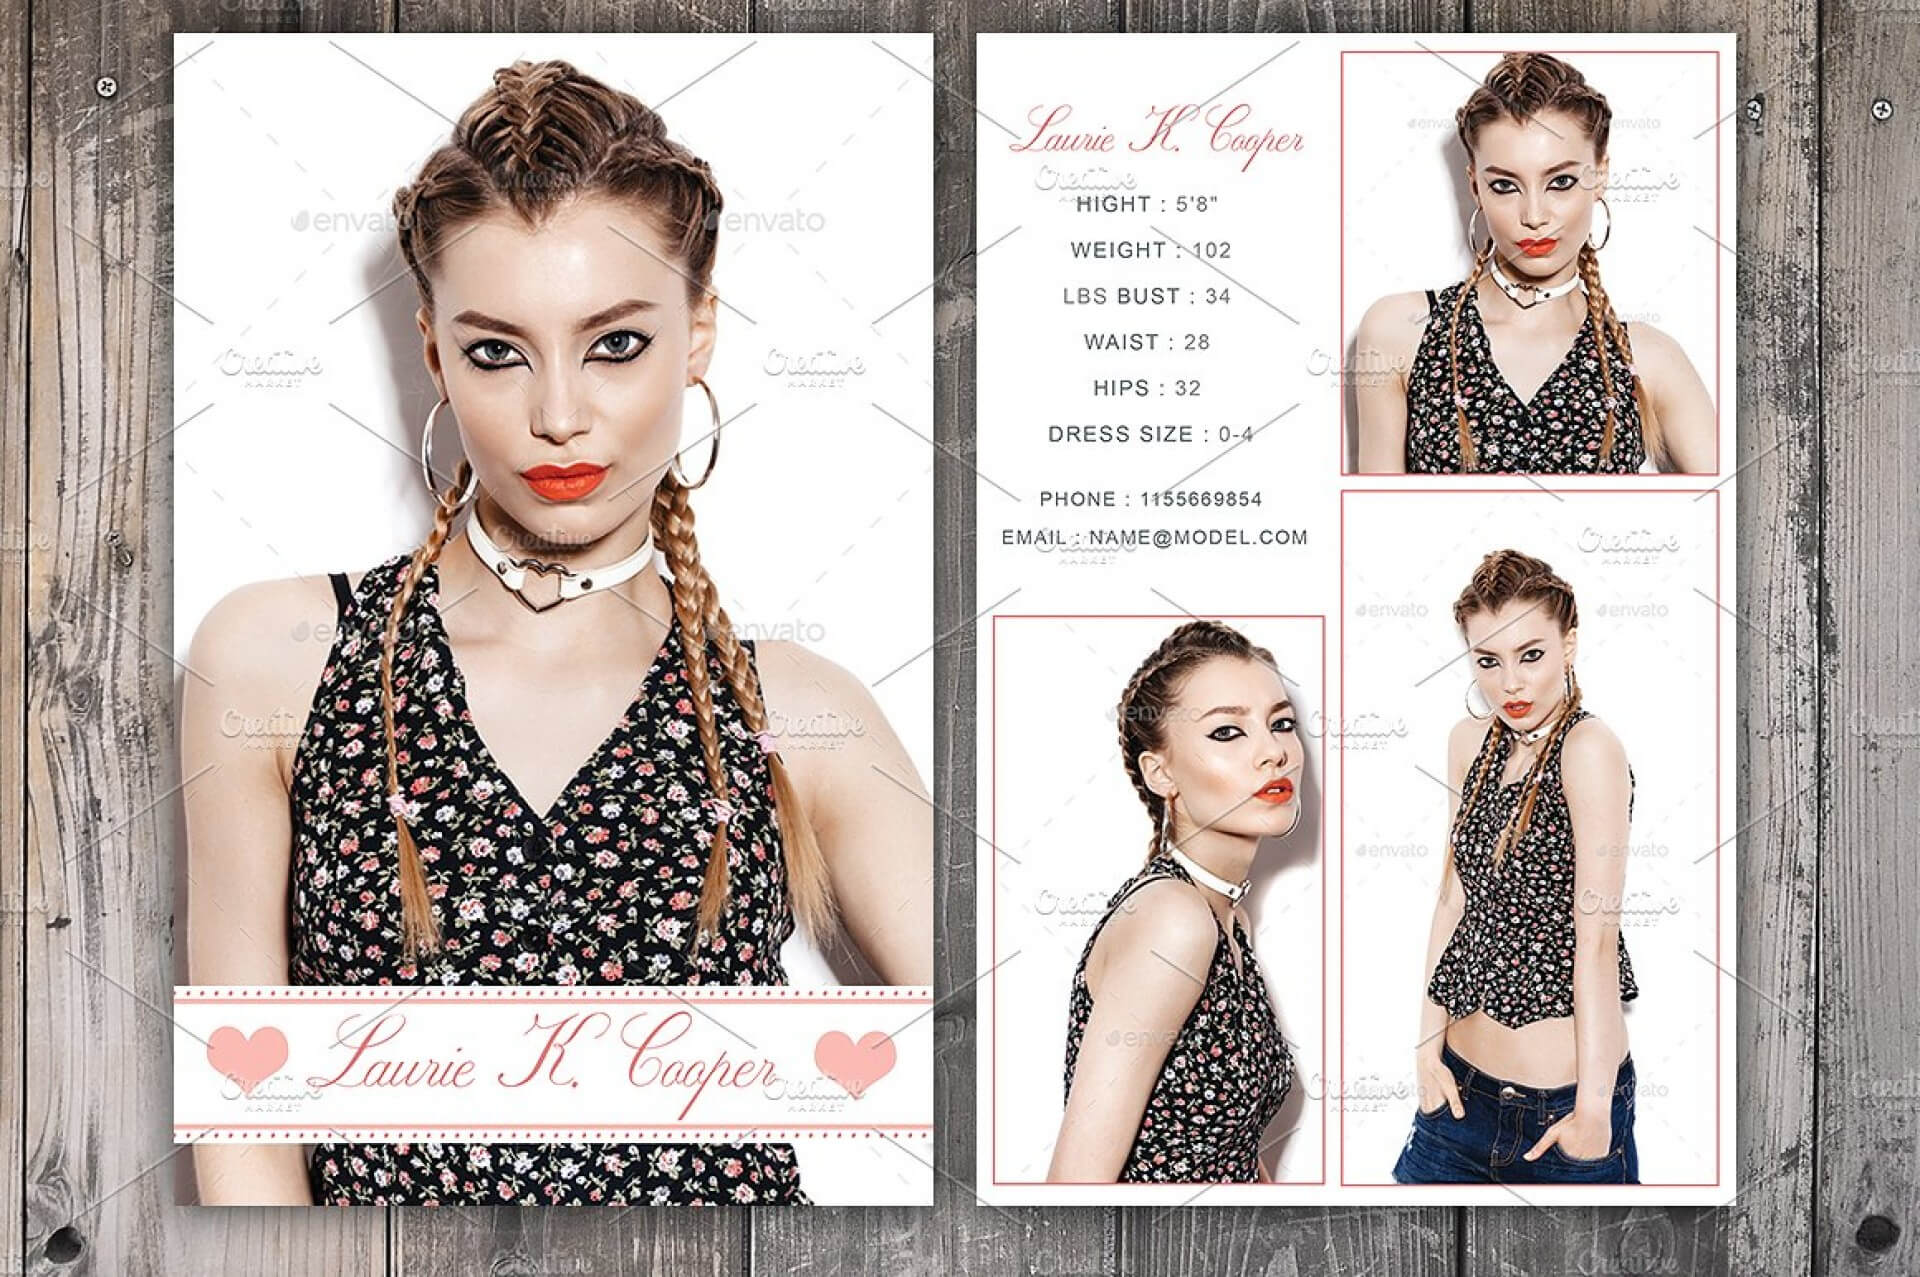 Free Comp Card Template Brochure Templates For Mac Photoshop Inside Free Model Comp Card Template